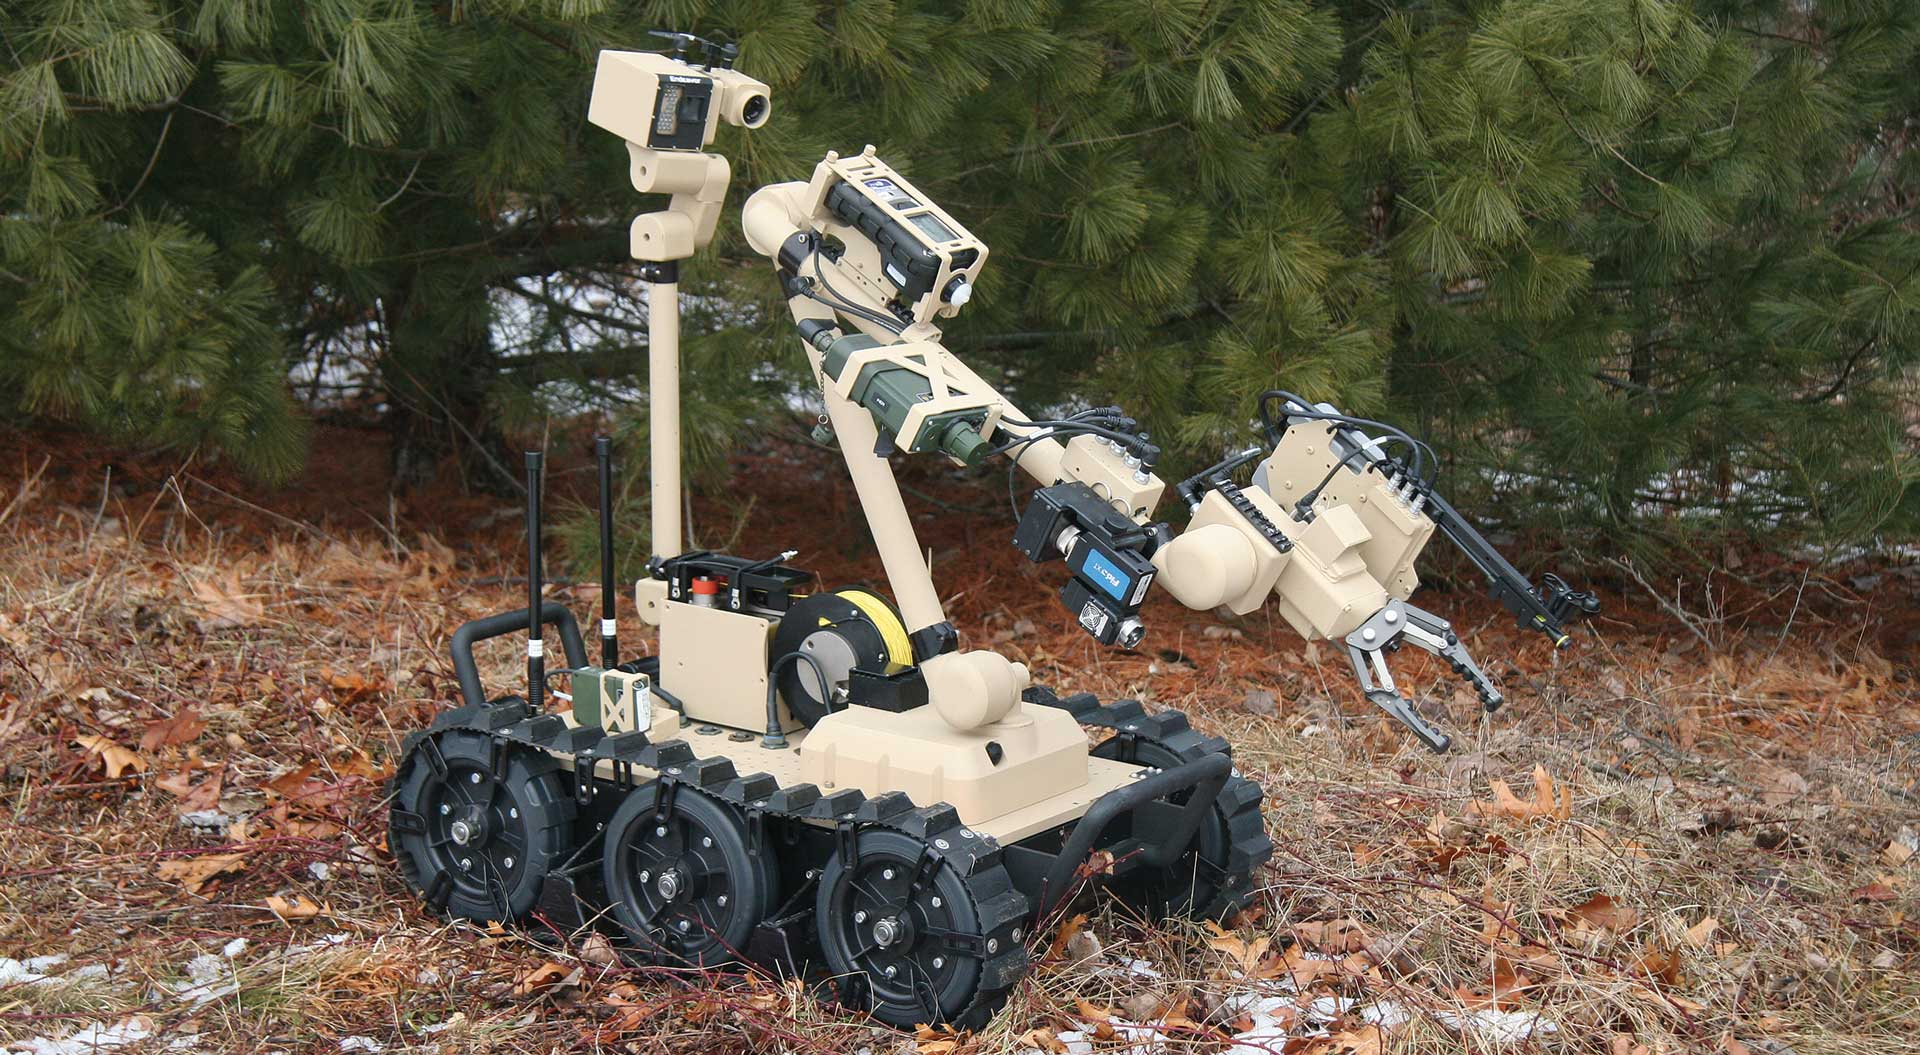 Man Transportable Robotic System Increment II (MTRS Inc II)